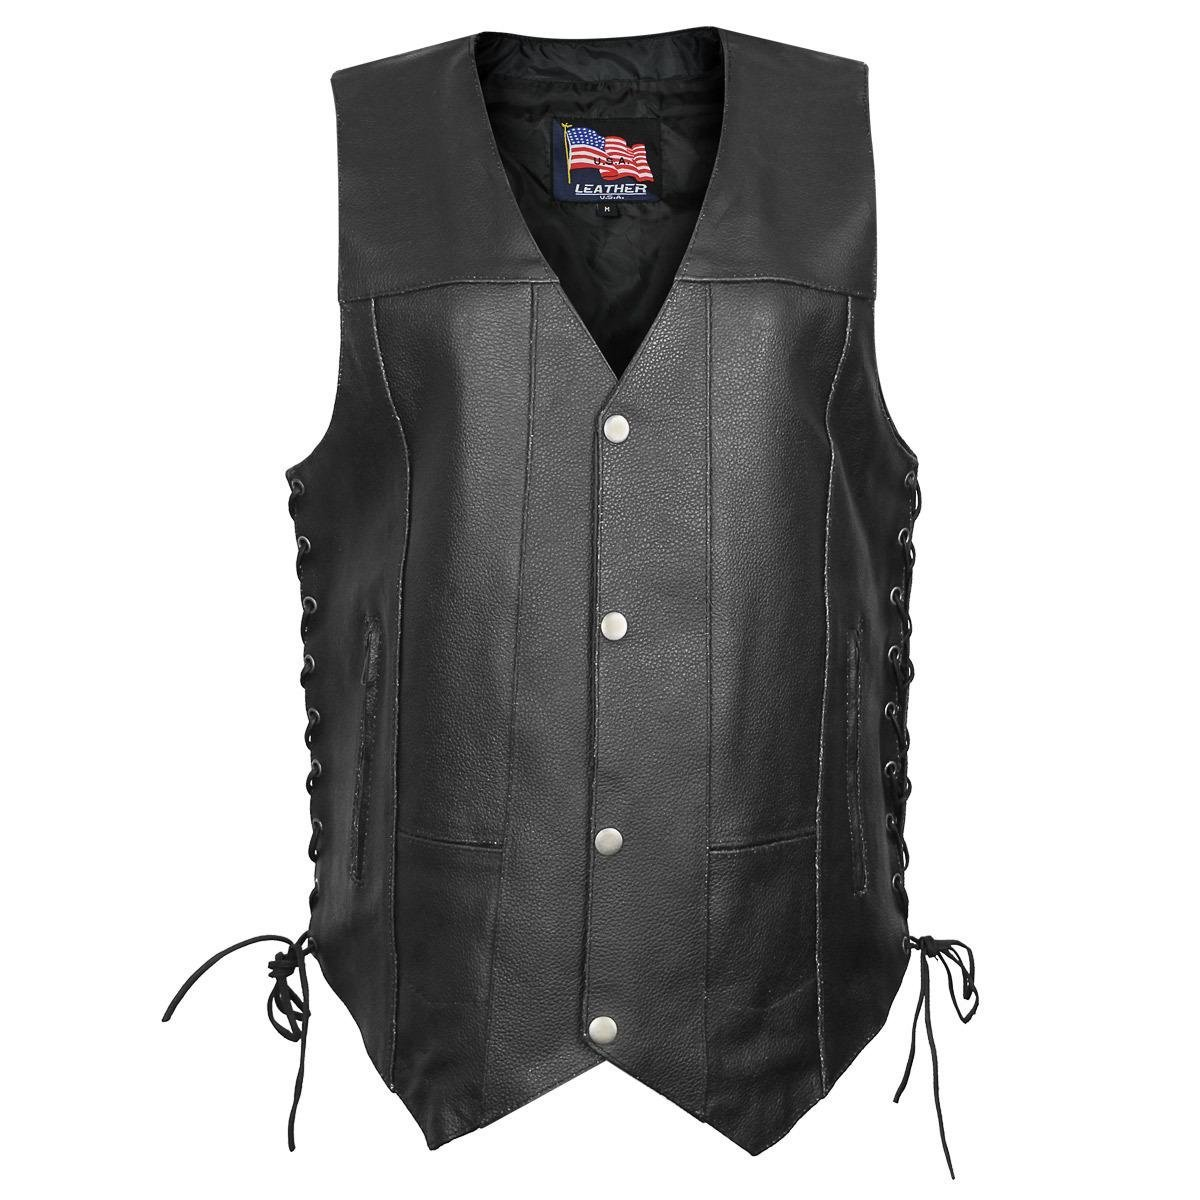 USA 1204 Classic Leather Mens Ten Pocket Vest with Side Laces - Large